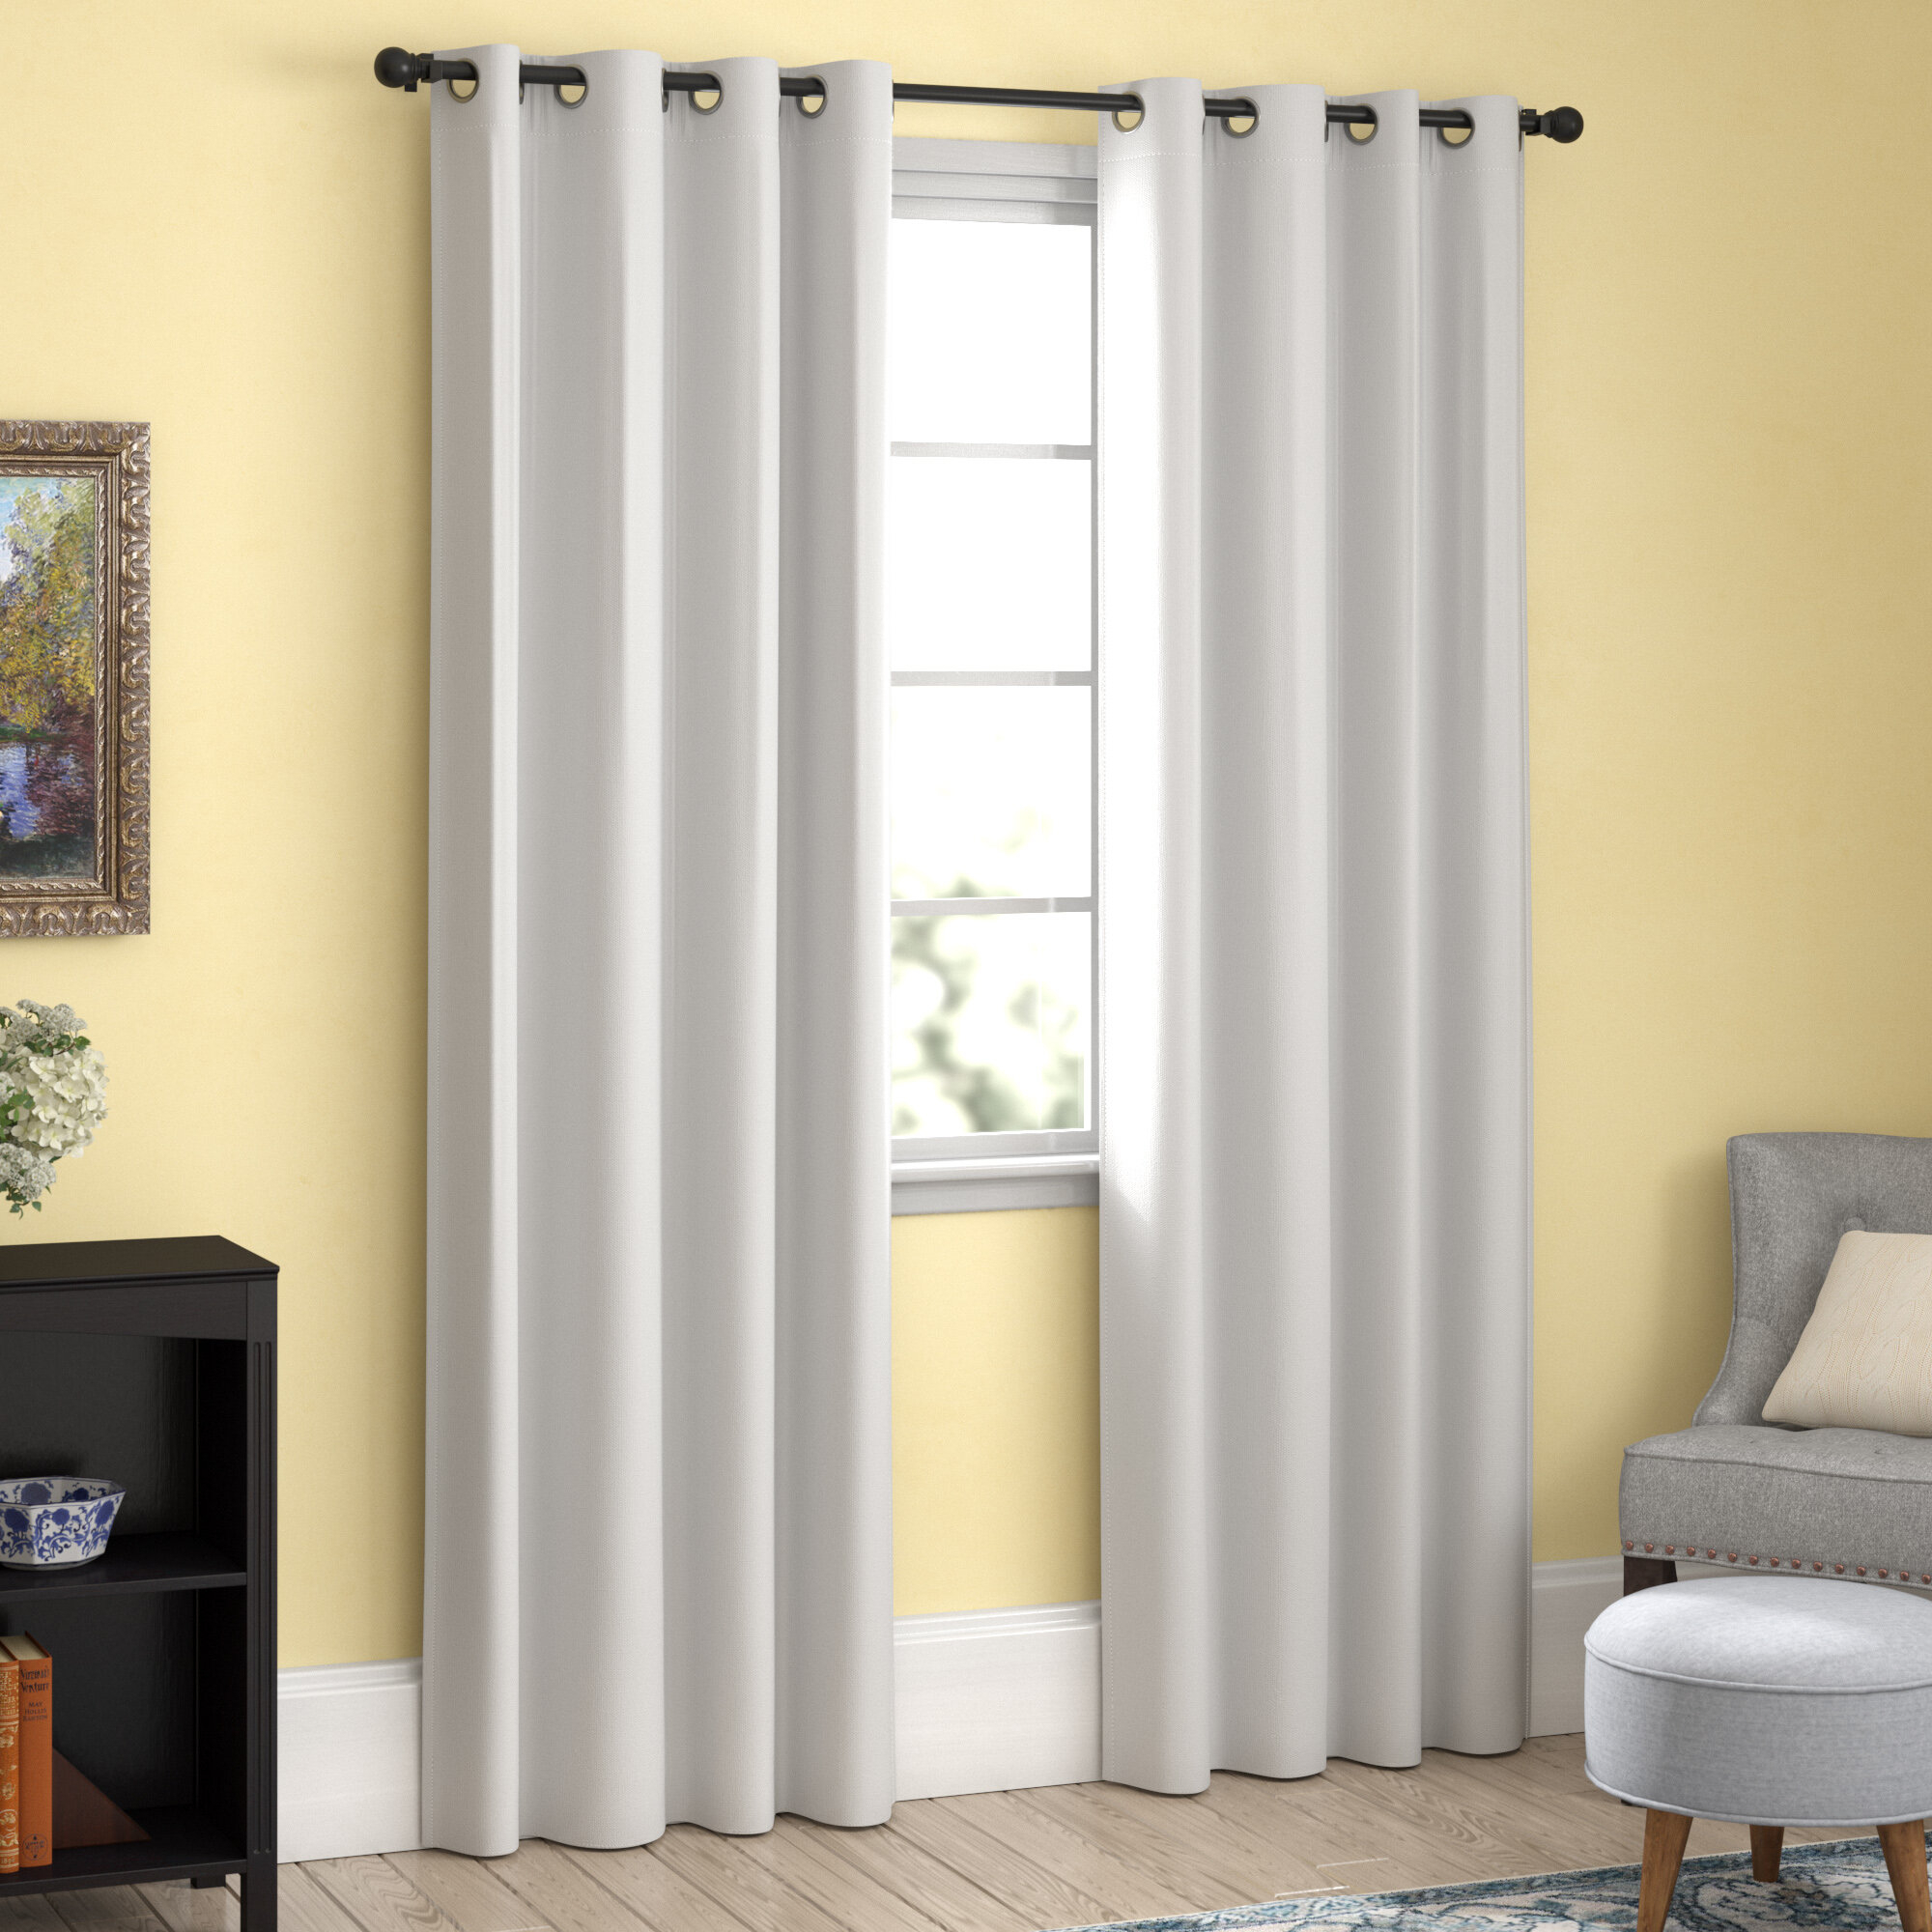 Chet Insulated Lined Solid Blackout Thermal Grommet Curtain Panels With Lined Grommet Curtain Panels (View 18 of 20)